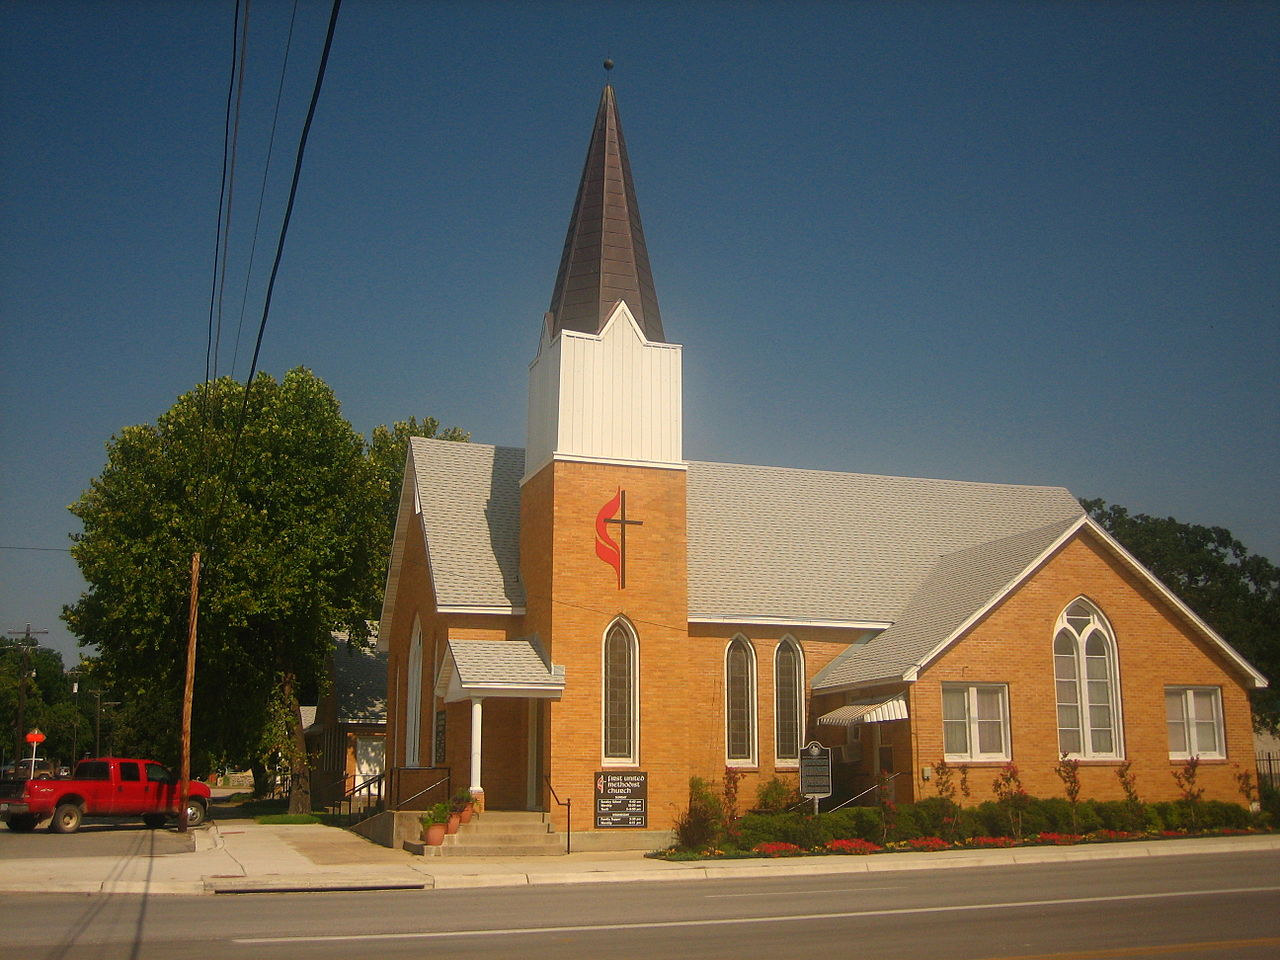 File:First United Methodist Church in Hico, TX Picture ...